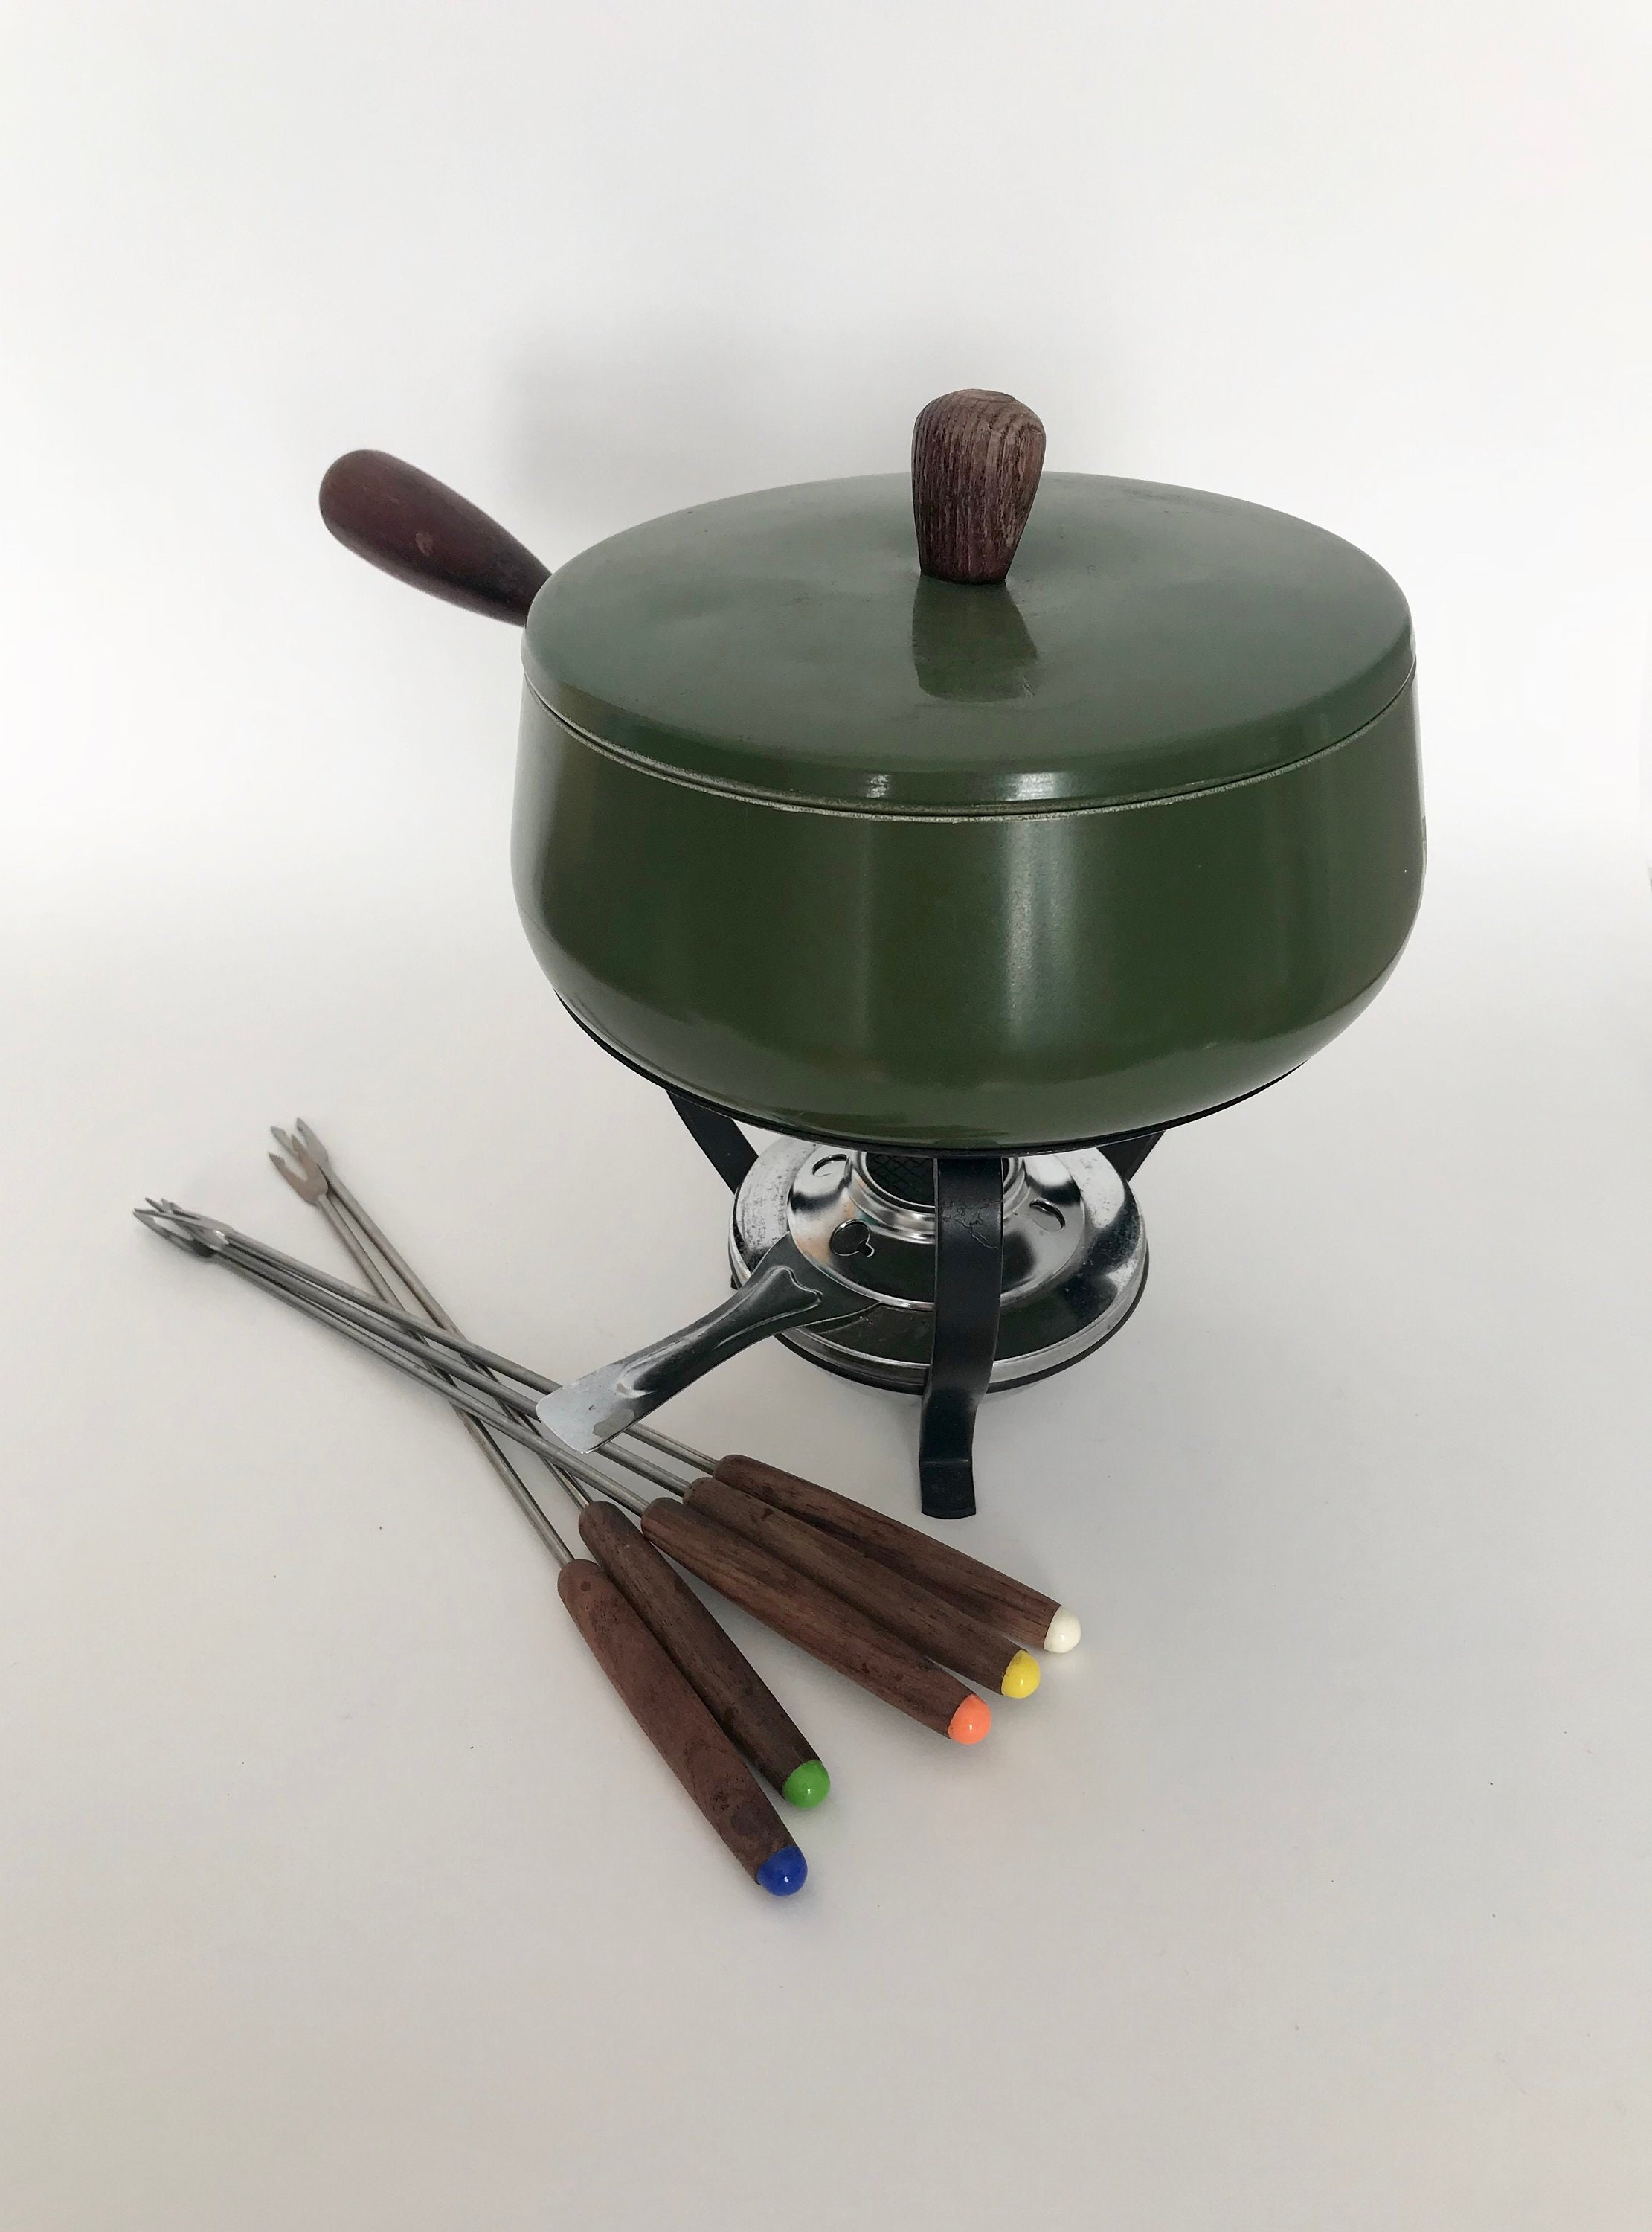 Green Fondue Pot Set Mid Century Modern Vintage Cheese Or Chocolate Fondue Pan With Wood Prongs And Stand